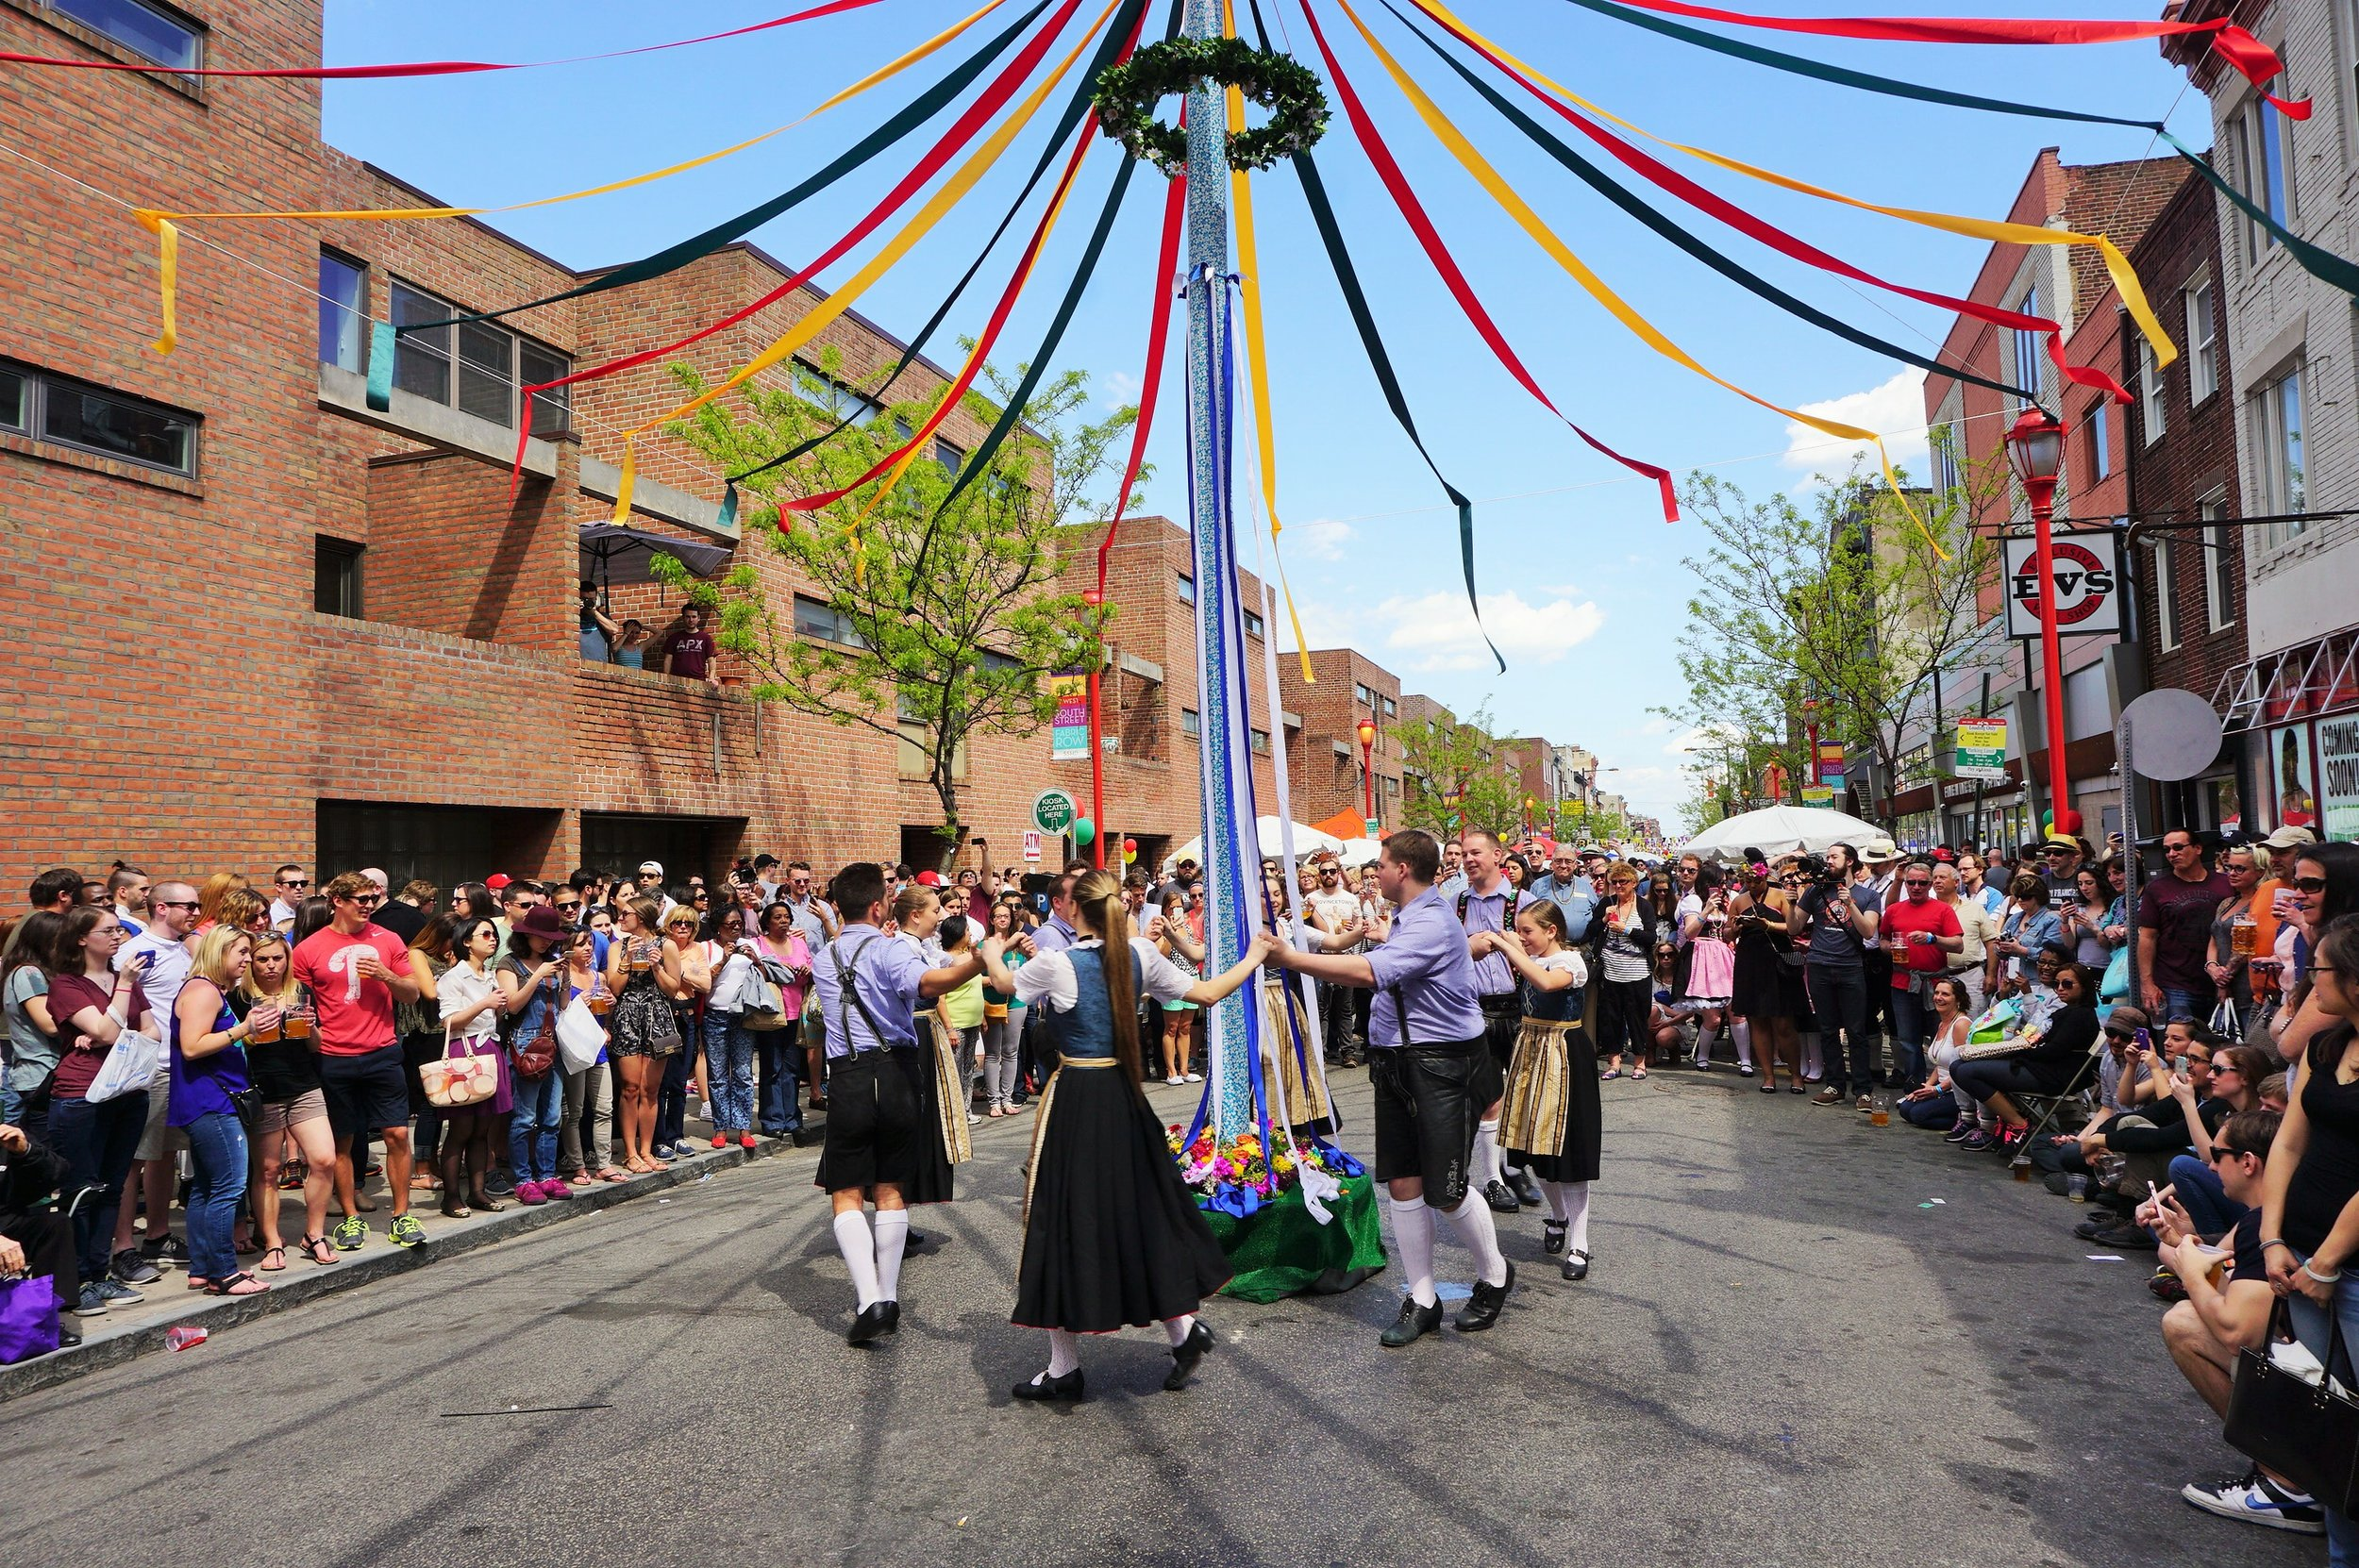 SAT MAY 6, 2017, 11:00am   South Street Spring Festival on South Street